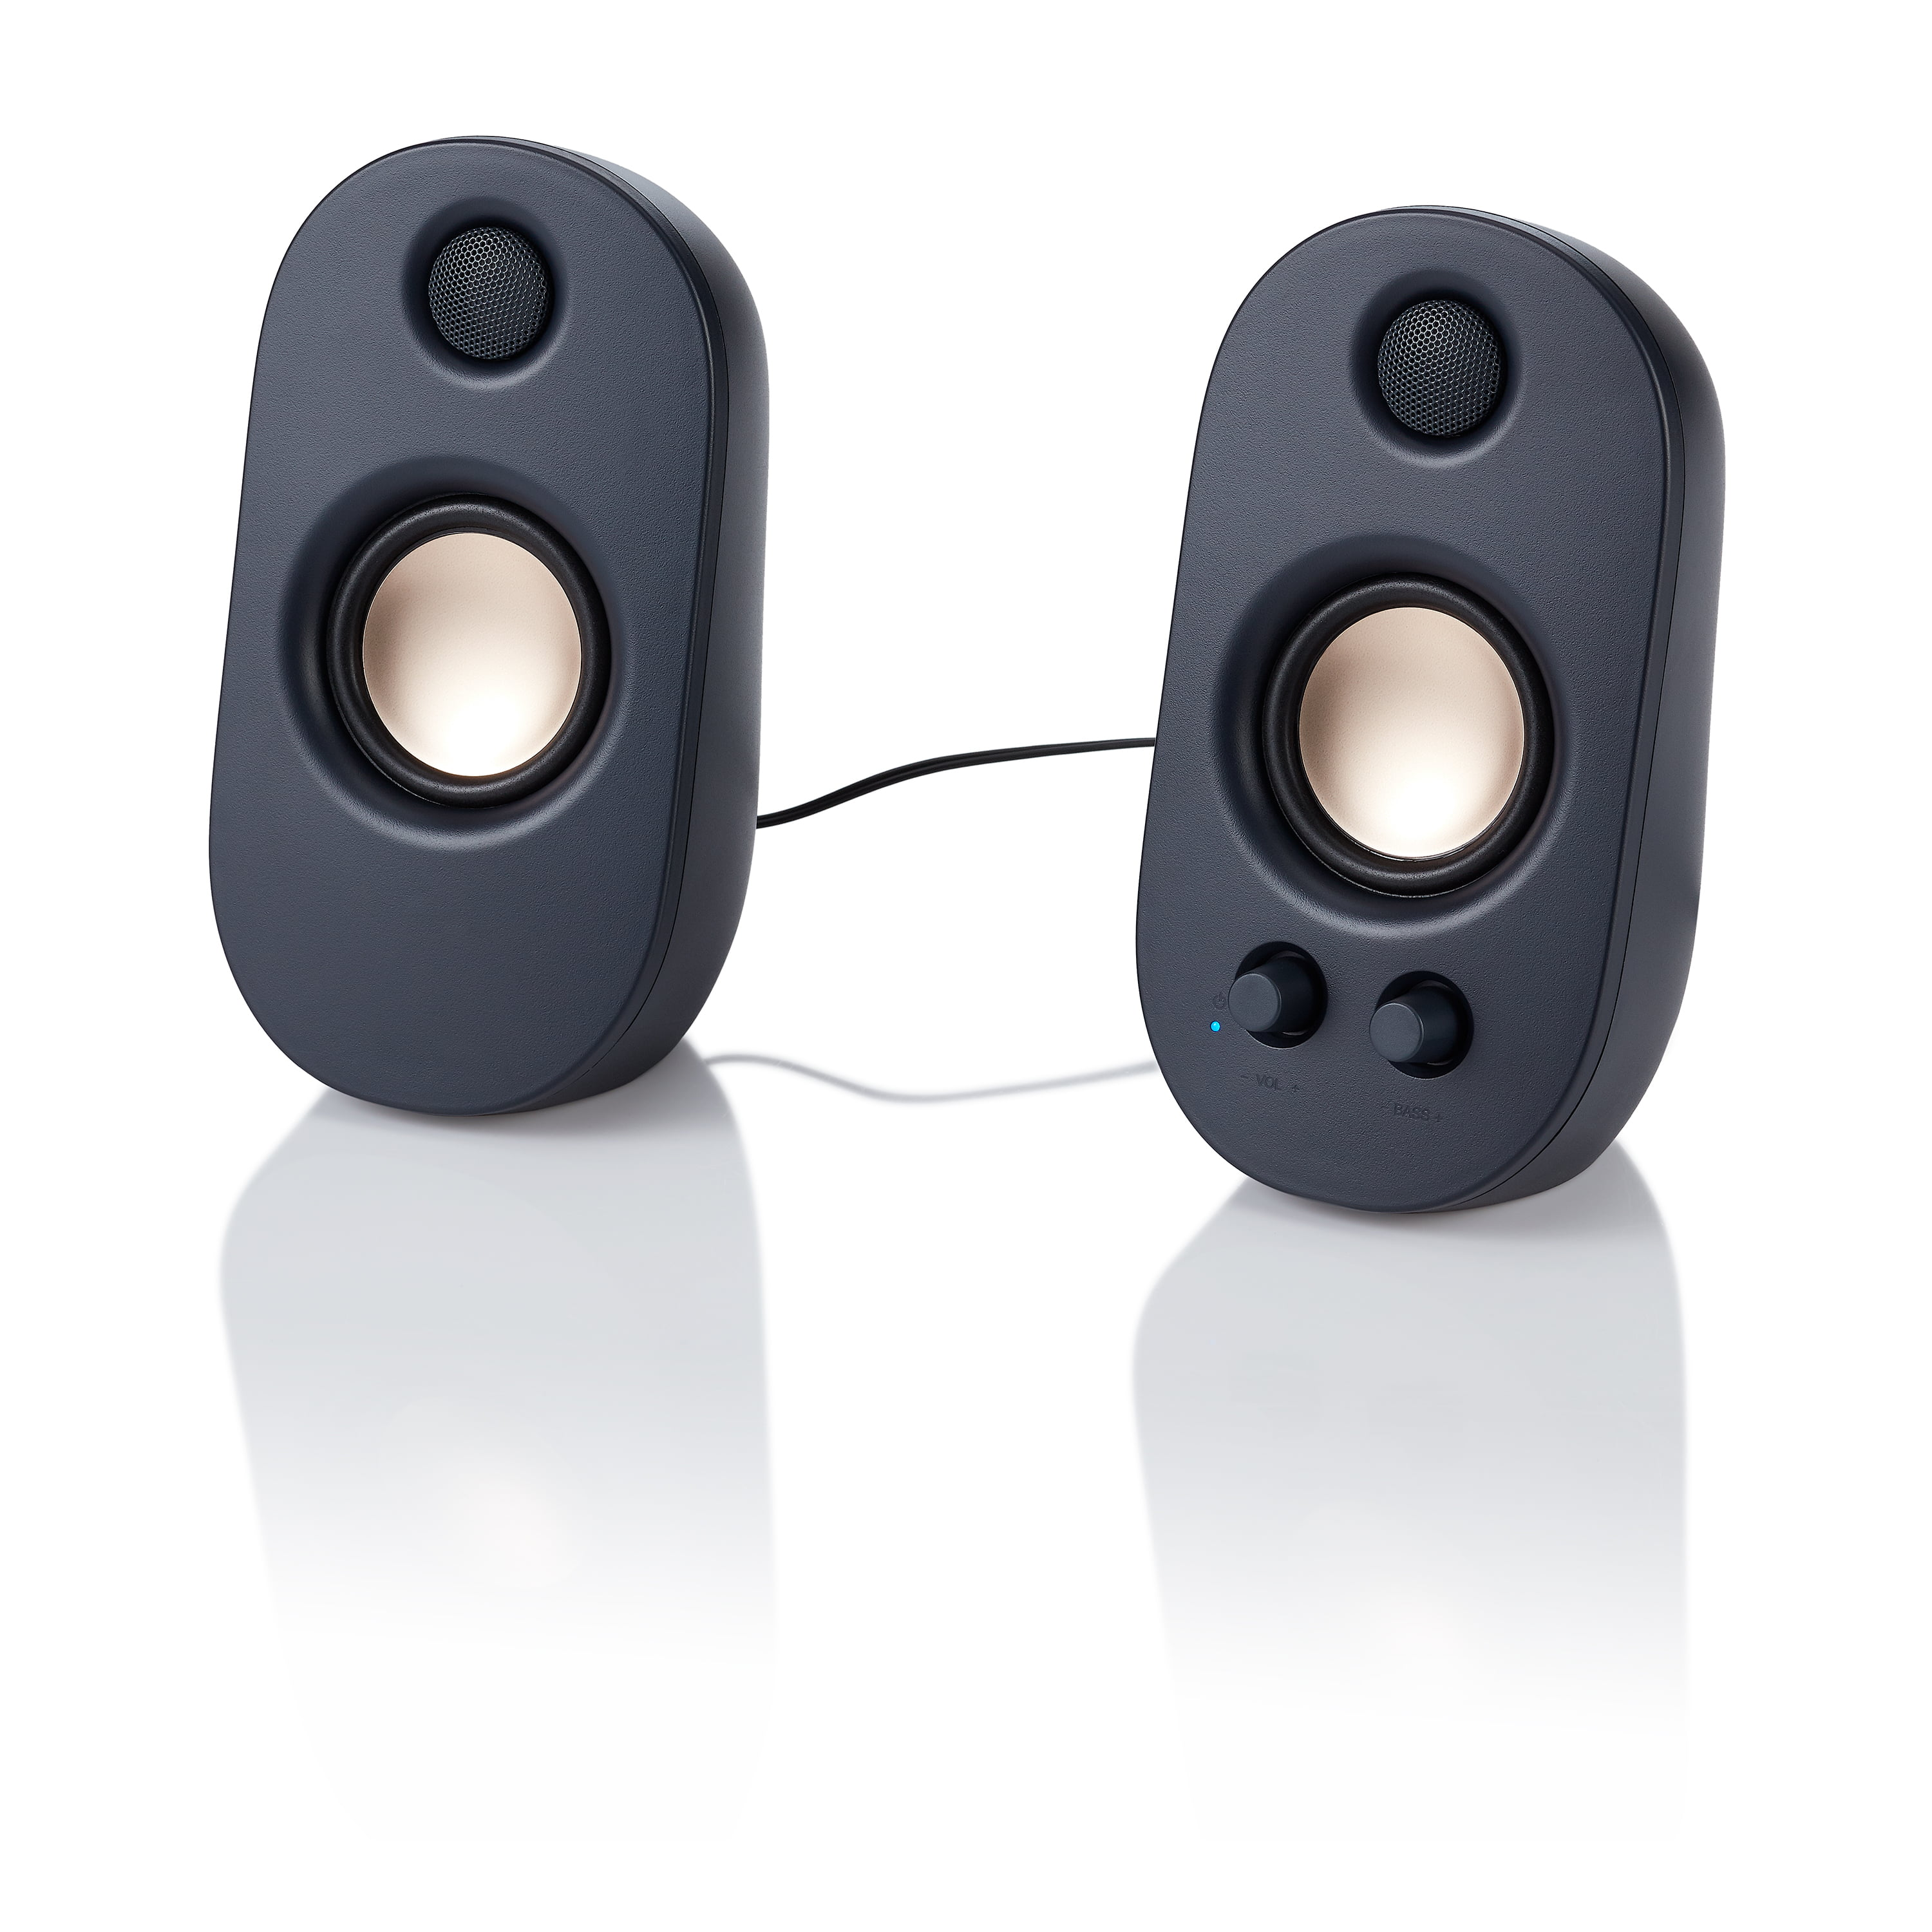 Onn. AC Powered Computer Speakers with Volume and Bass Controls